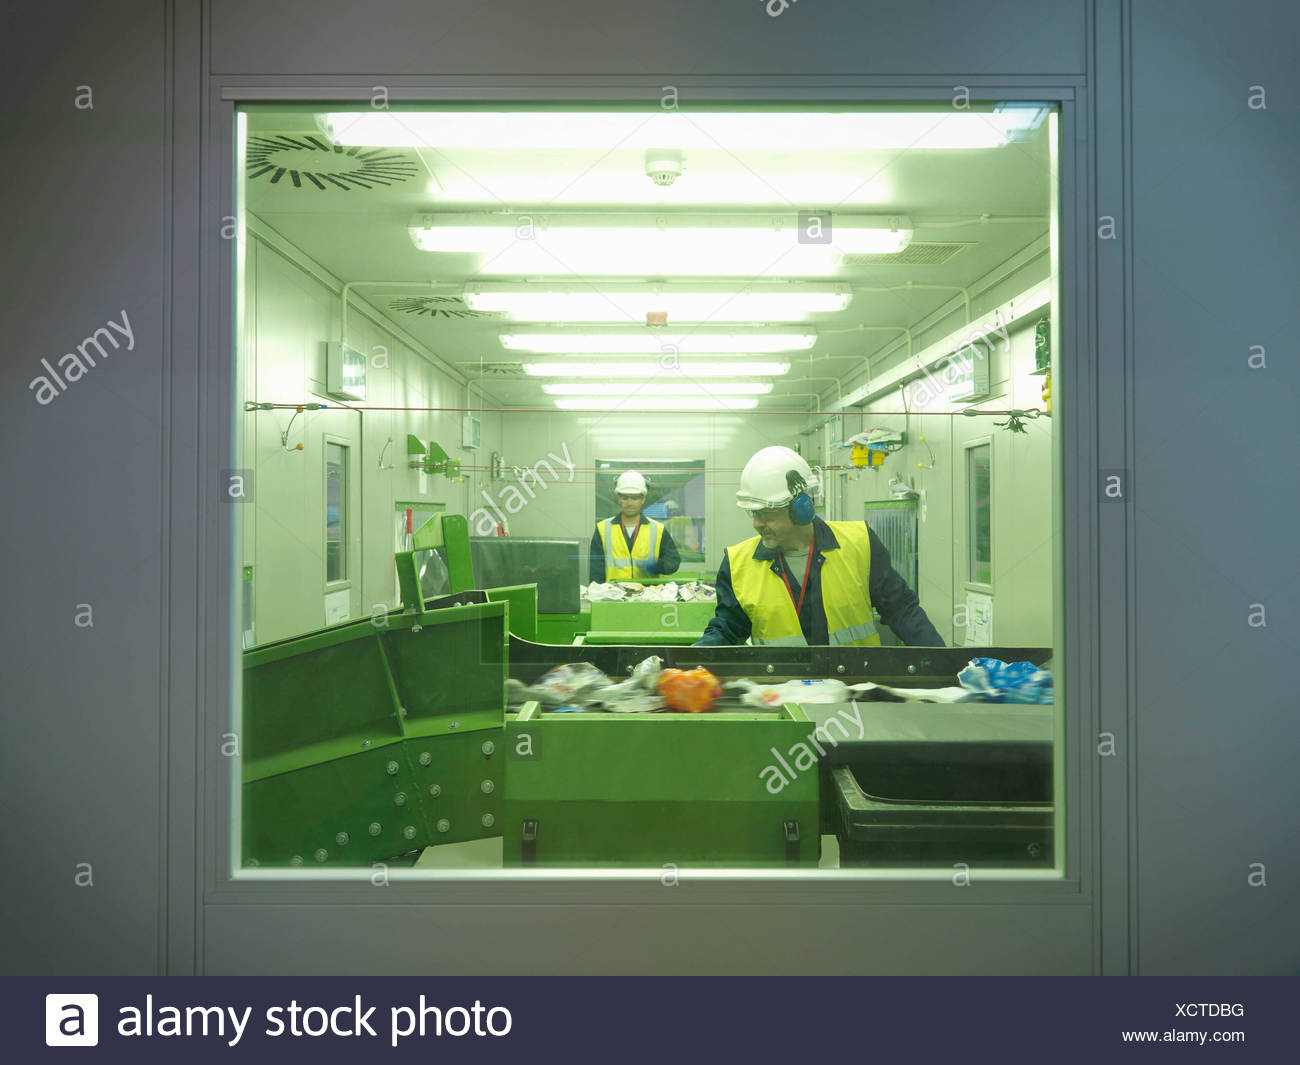 Workers Separating Waste In Plant - Stock Image